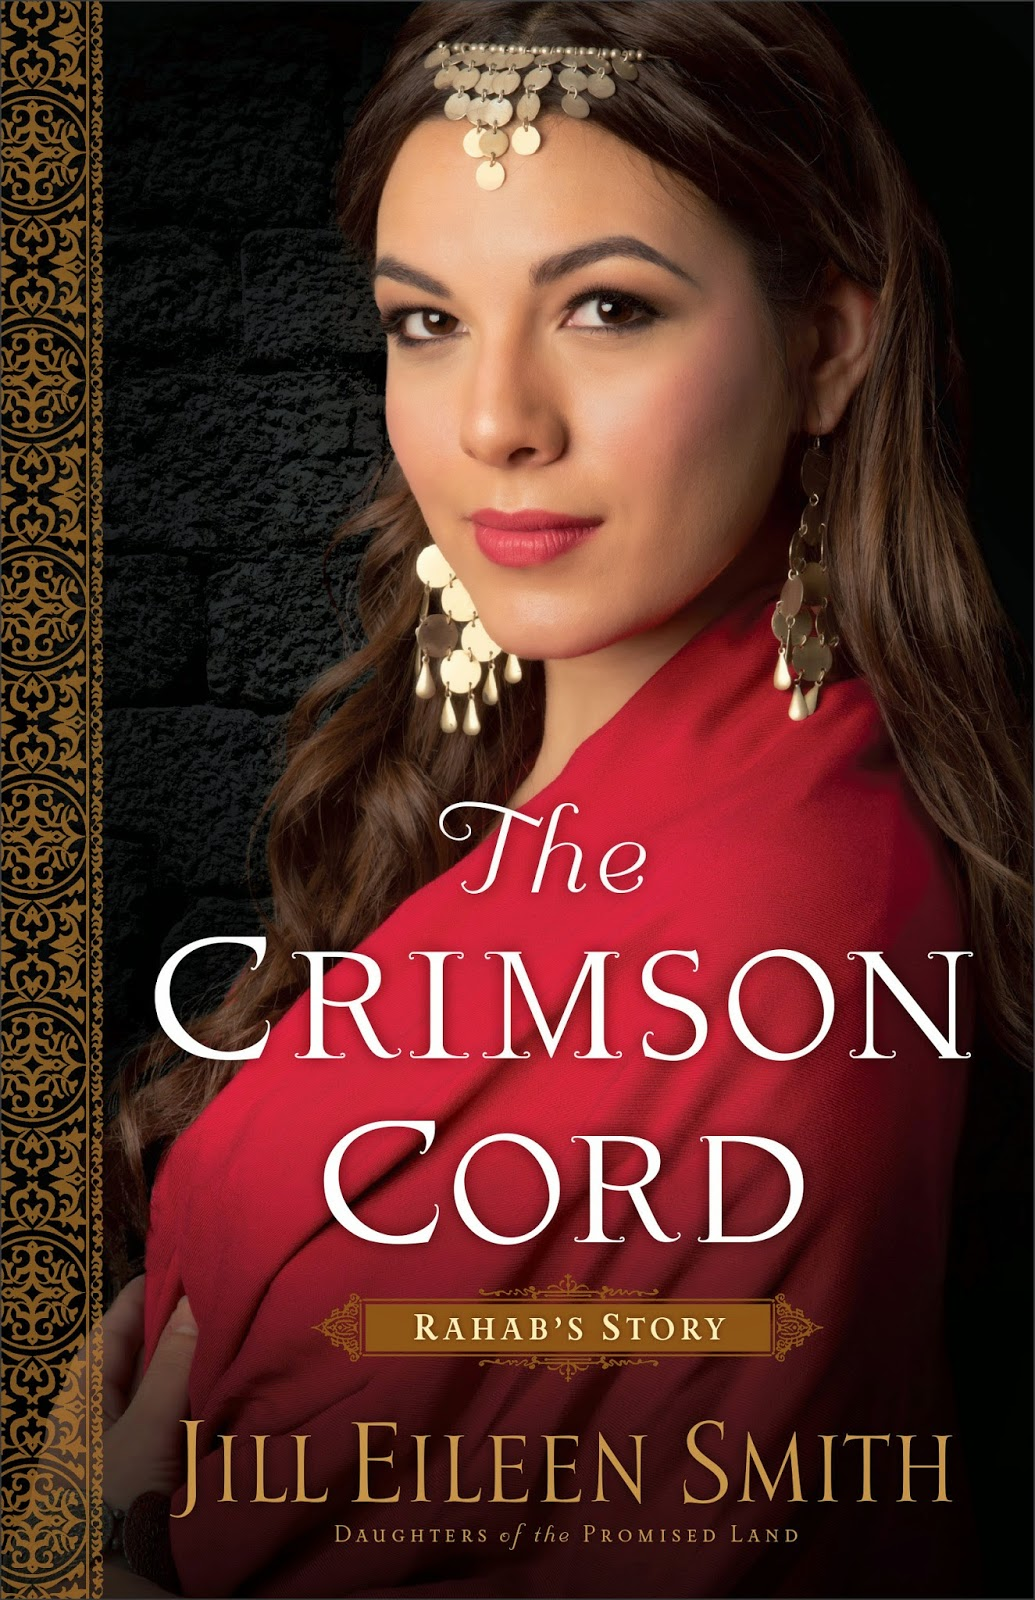 The Crimson Cord: Rahab's Story (Daughters of the Promised Land) by Jill Eileen Smith